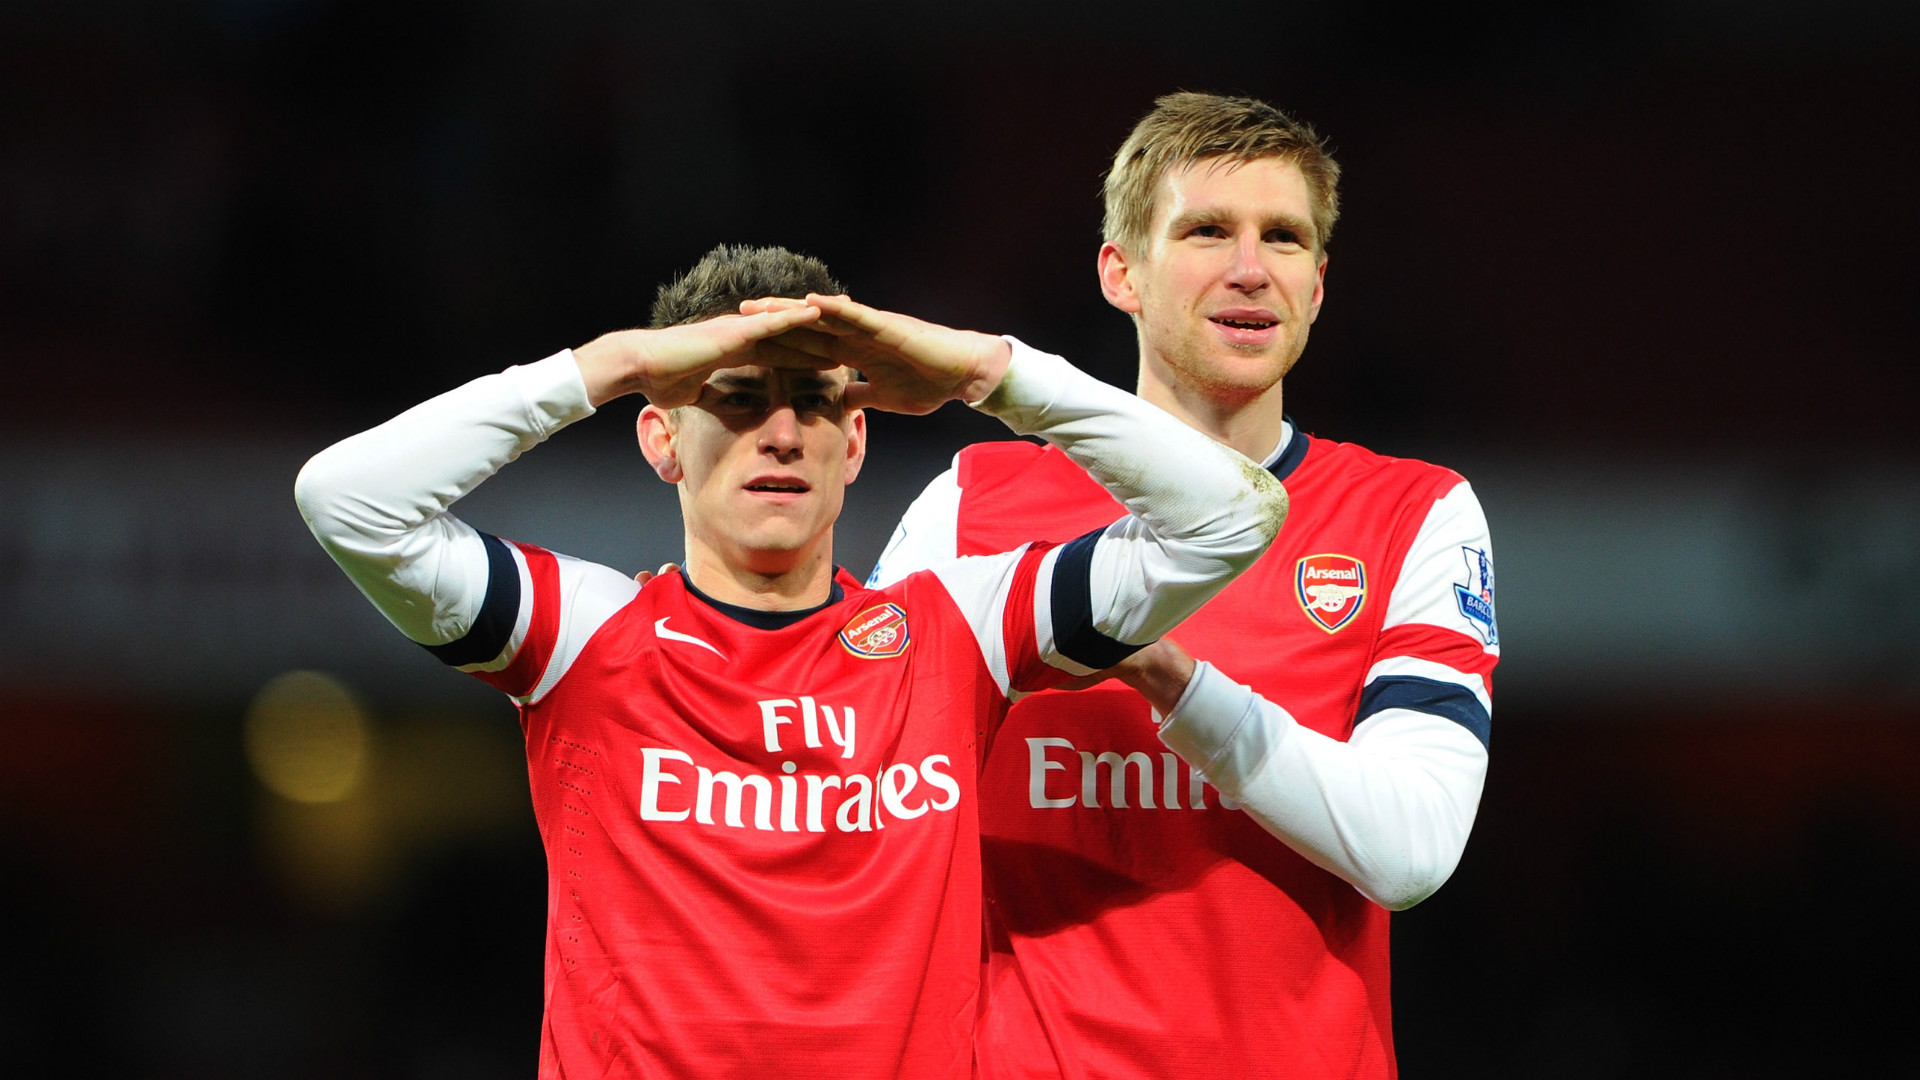 Laurent Koscielny & Per Mertesacker | Arsenal